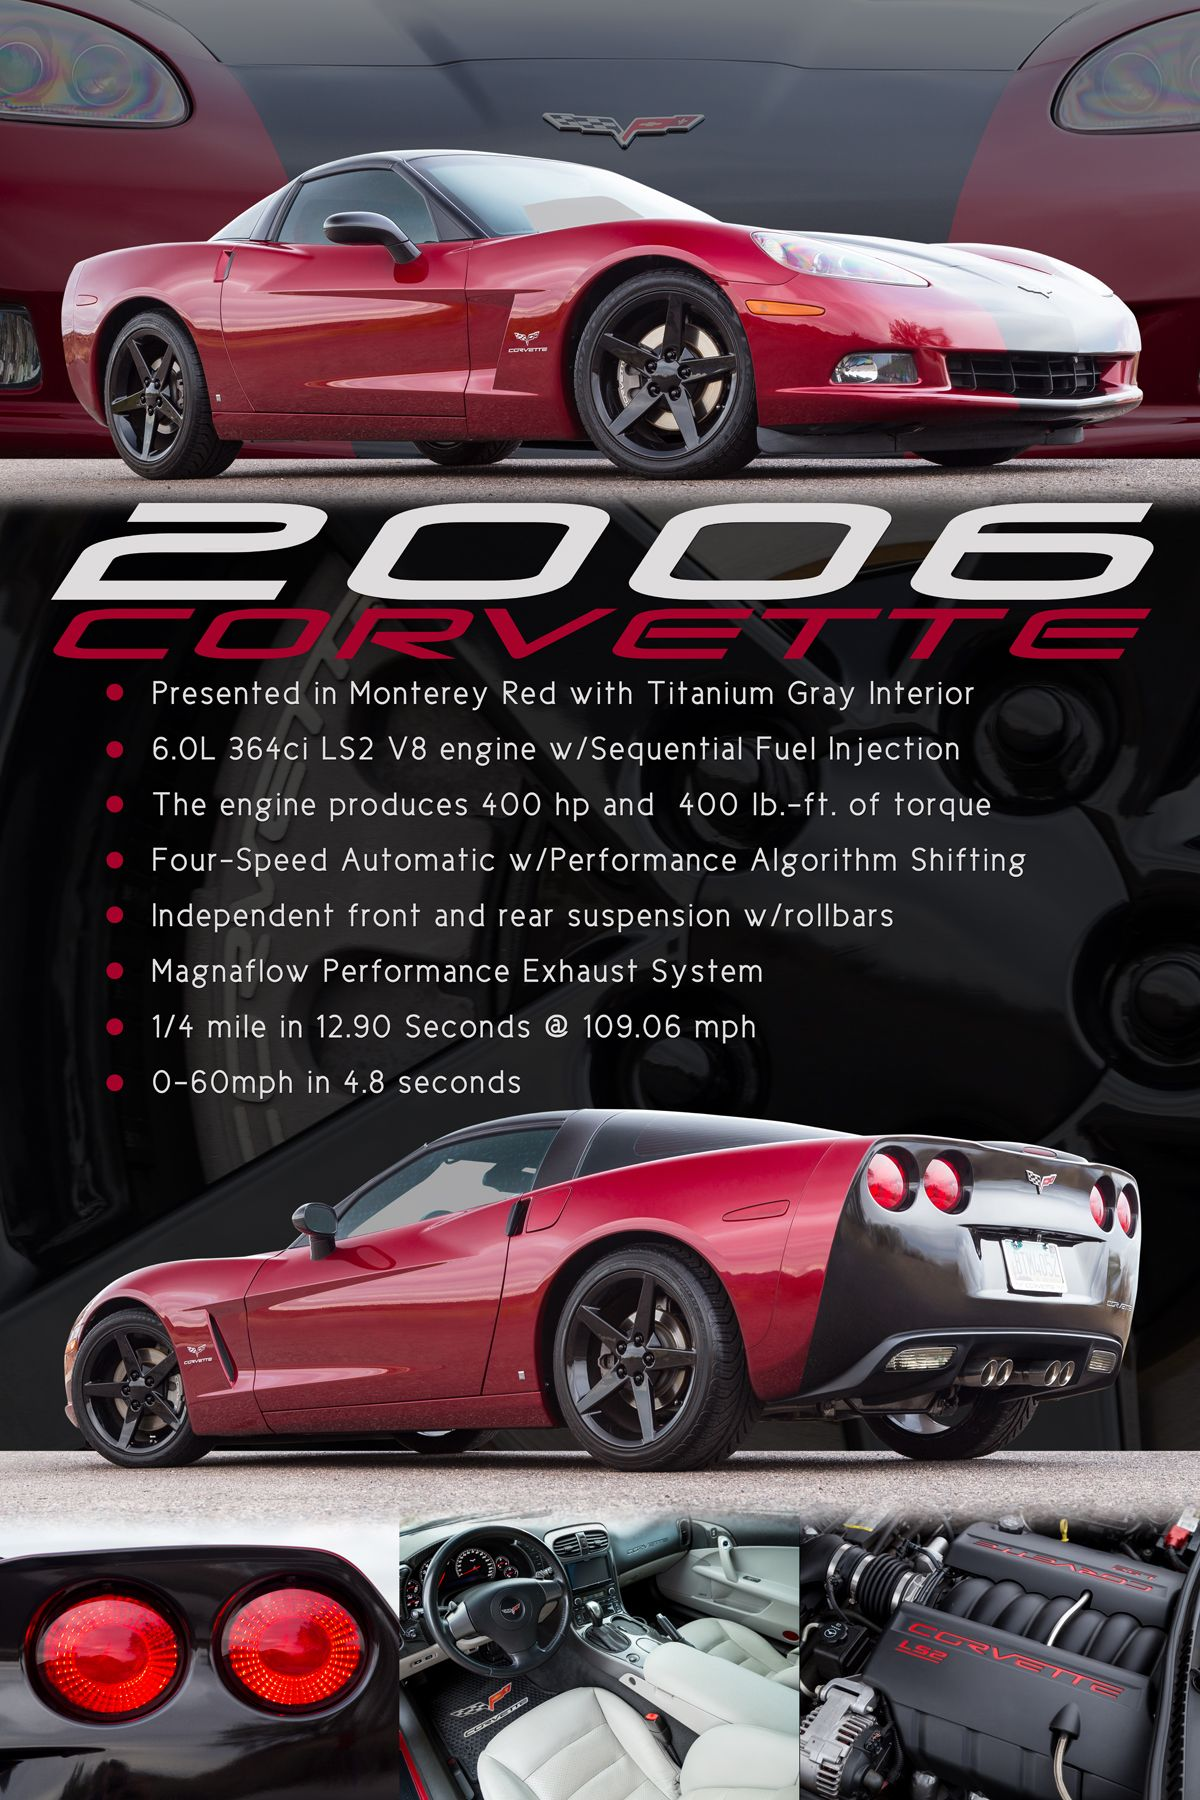 Stunning Car Show Boardssigns Of Your Car Or Truck On Brushed - Car show display boards